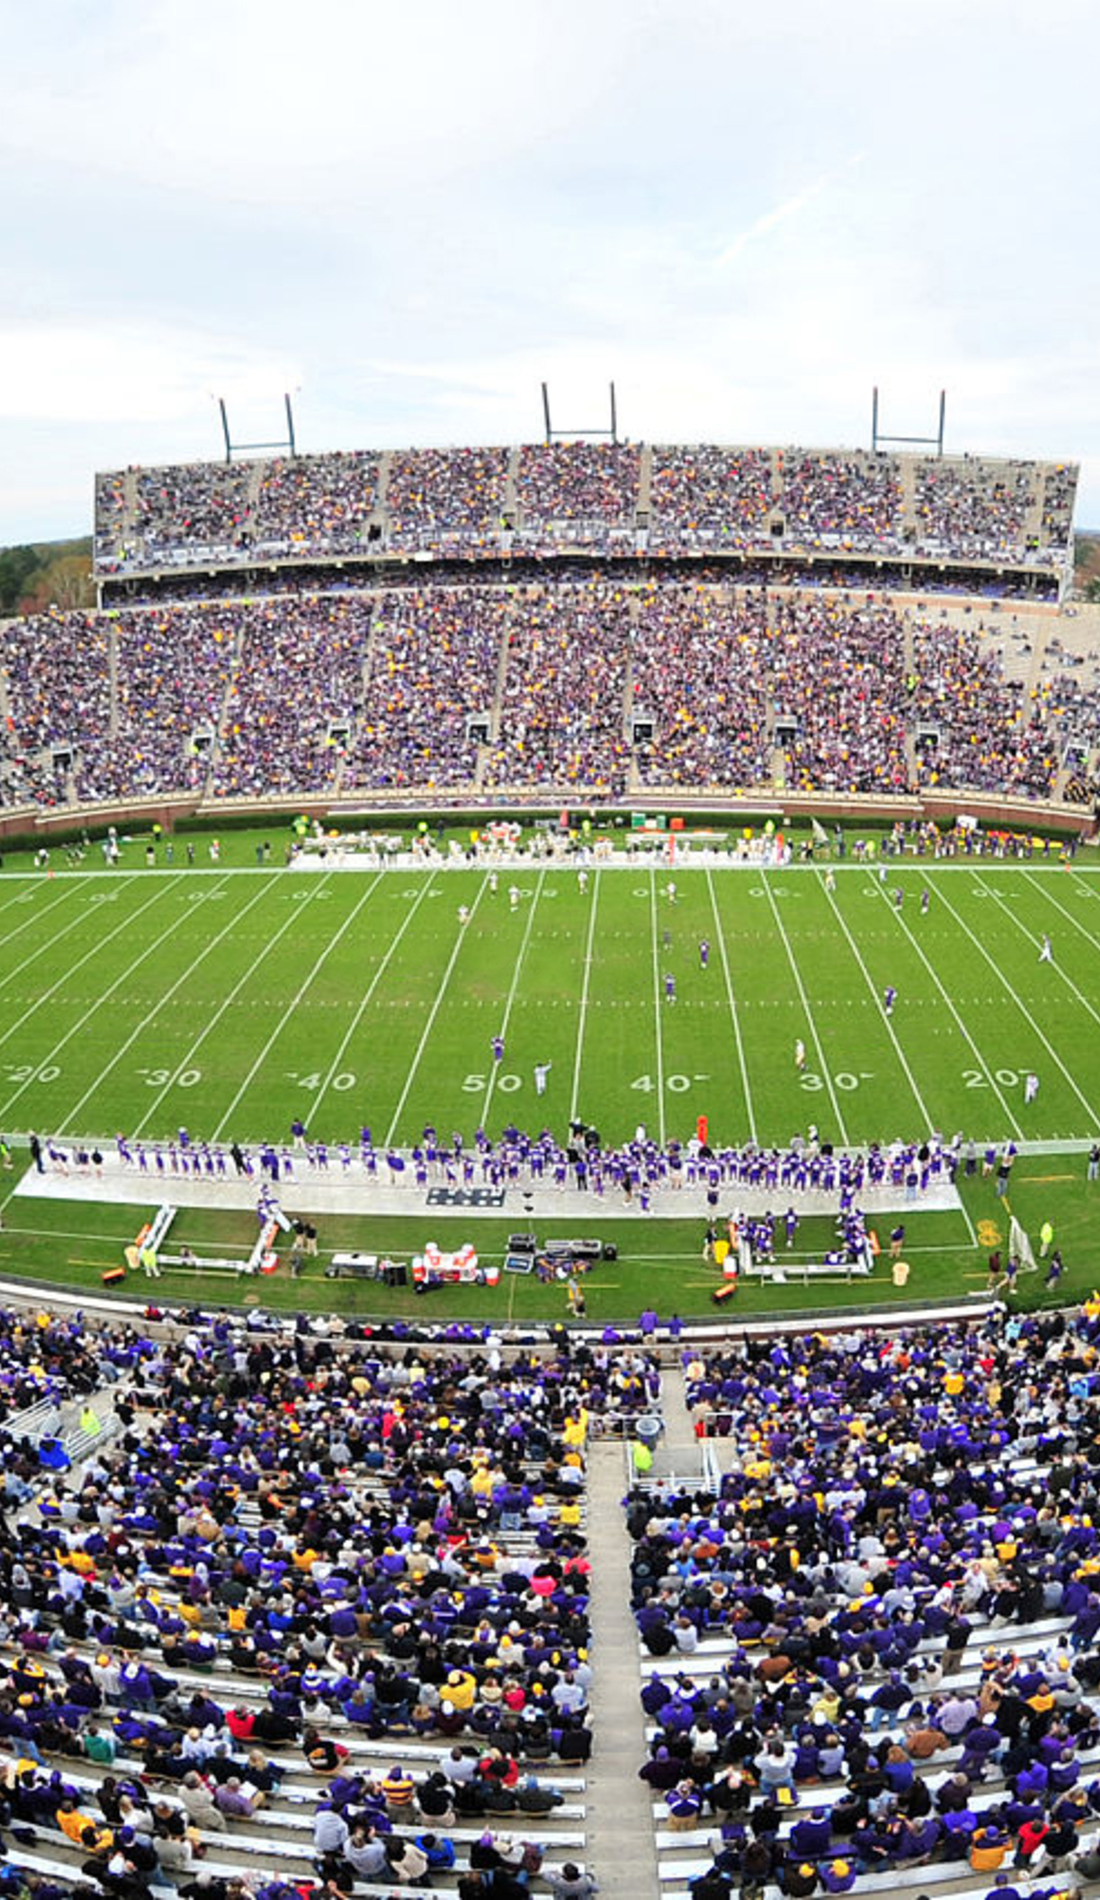 A East Carolina Pirates Football live event